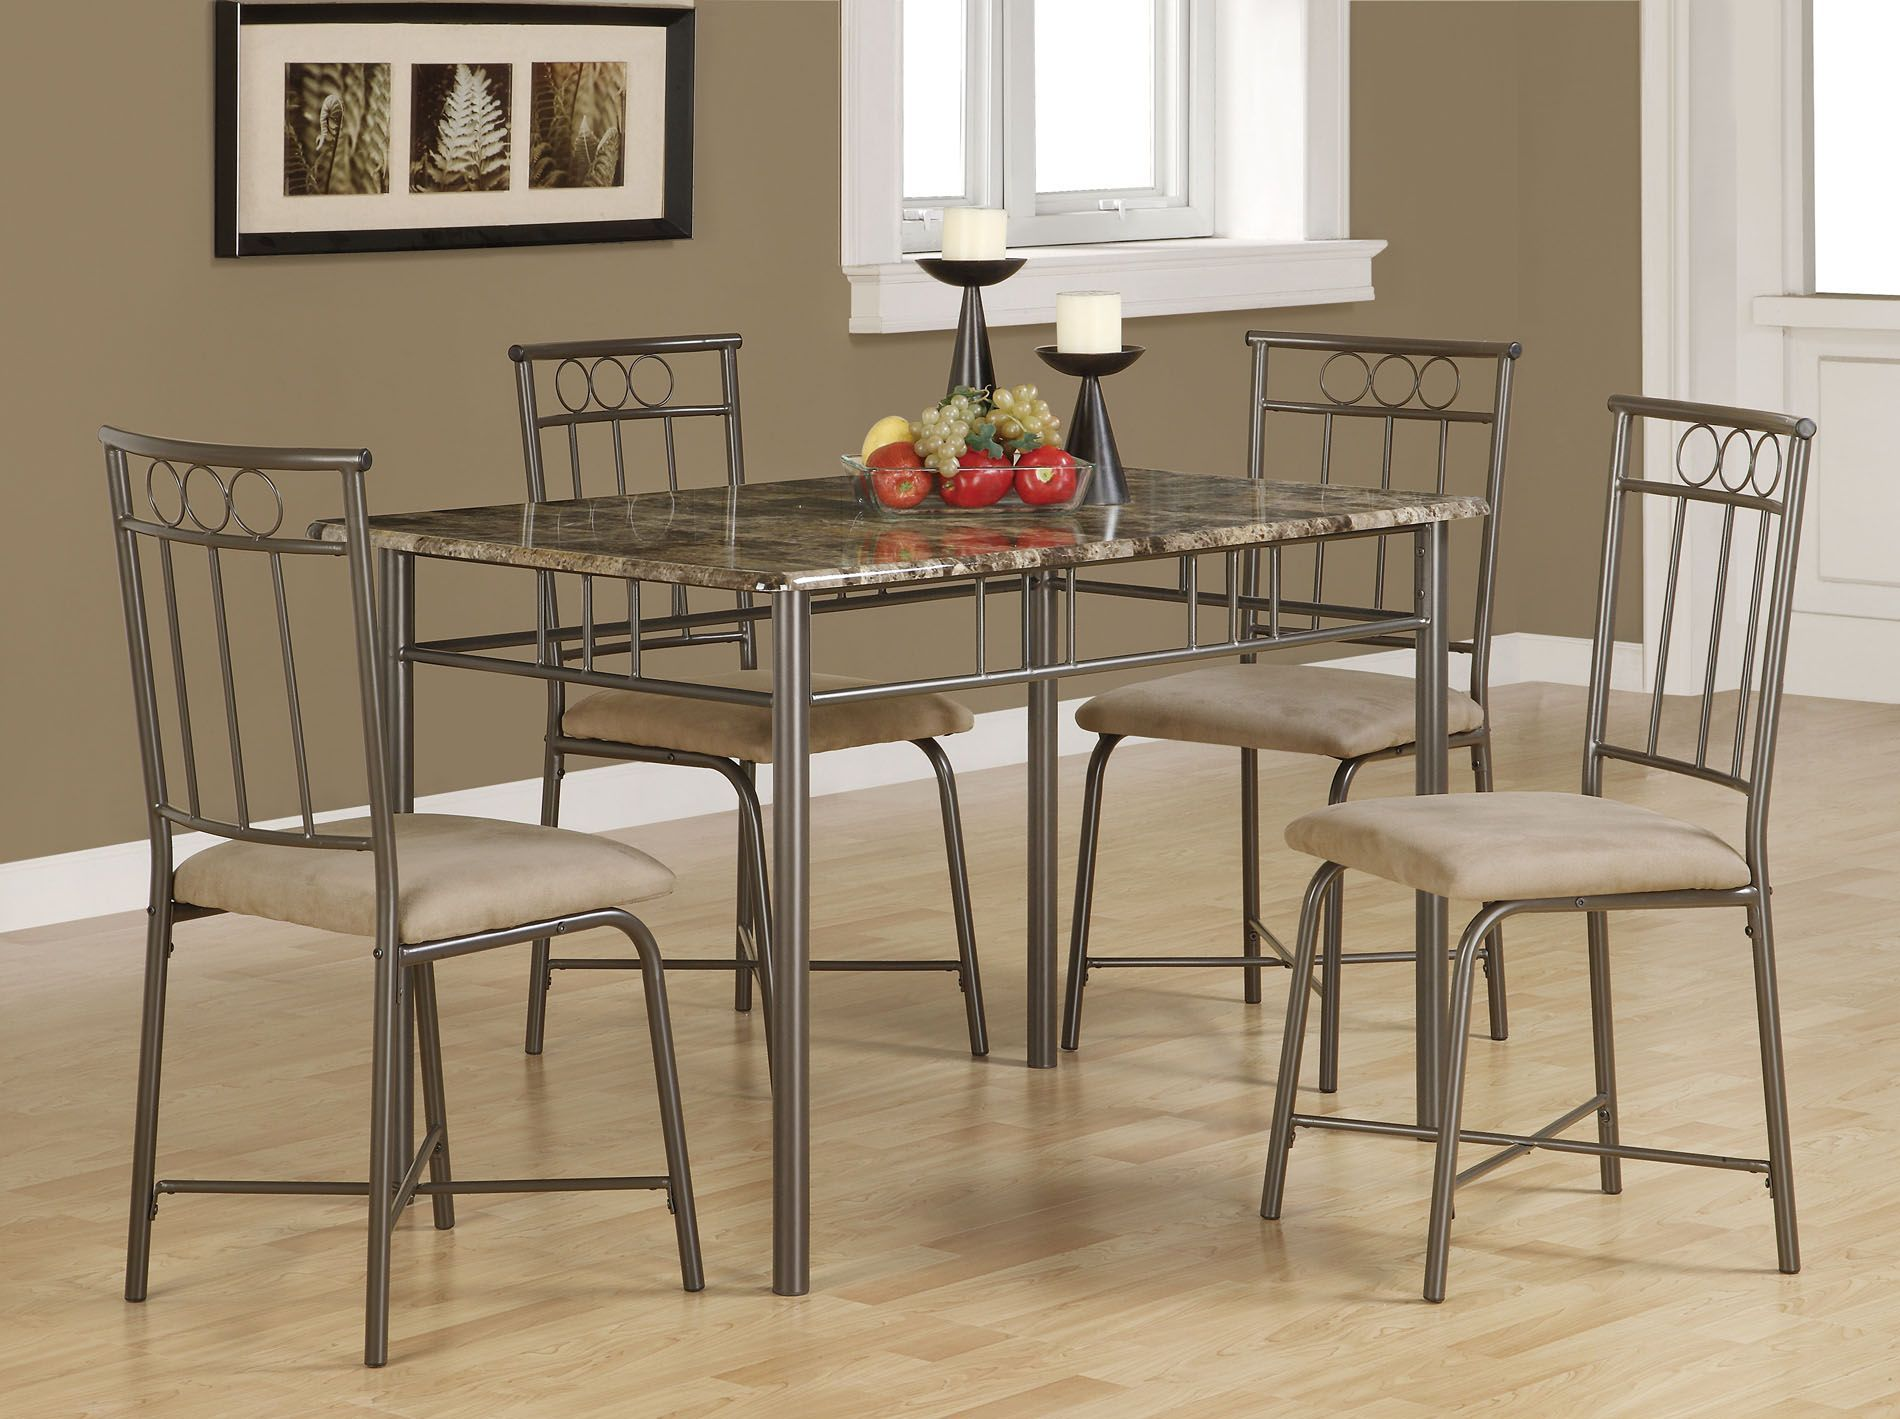 Create A Contemporary Atmosphere In Your Dining Room With This Bronze  Five Piece Dining Set. The Modern Cappuccino Colored Chairs Provide Raised  Seating For ...